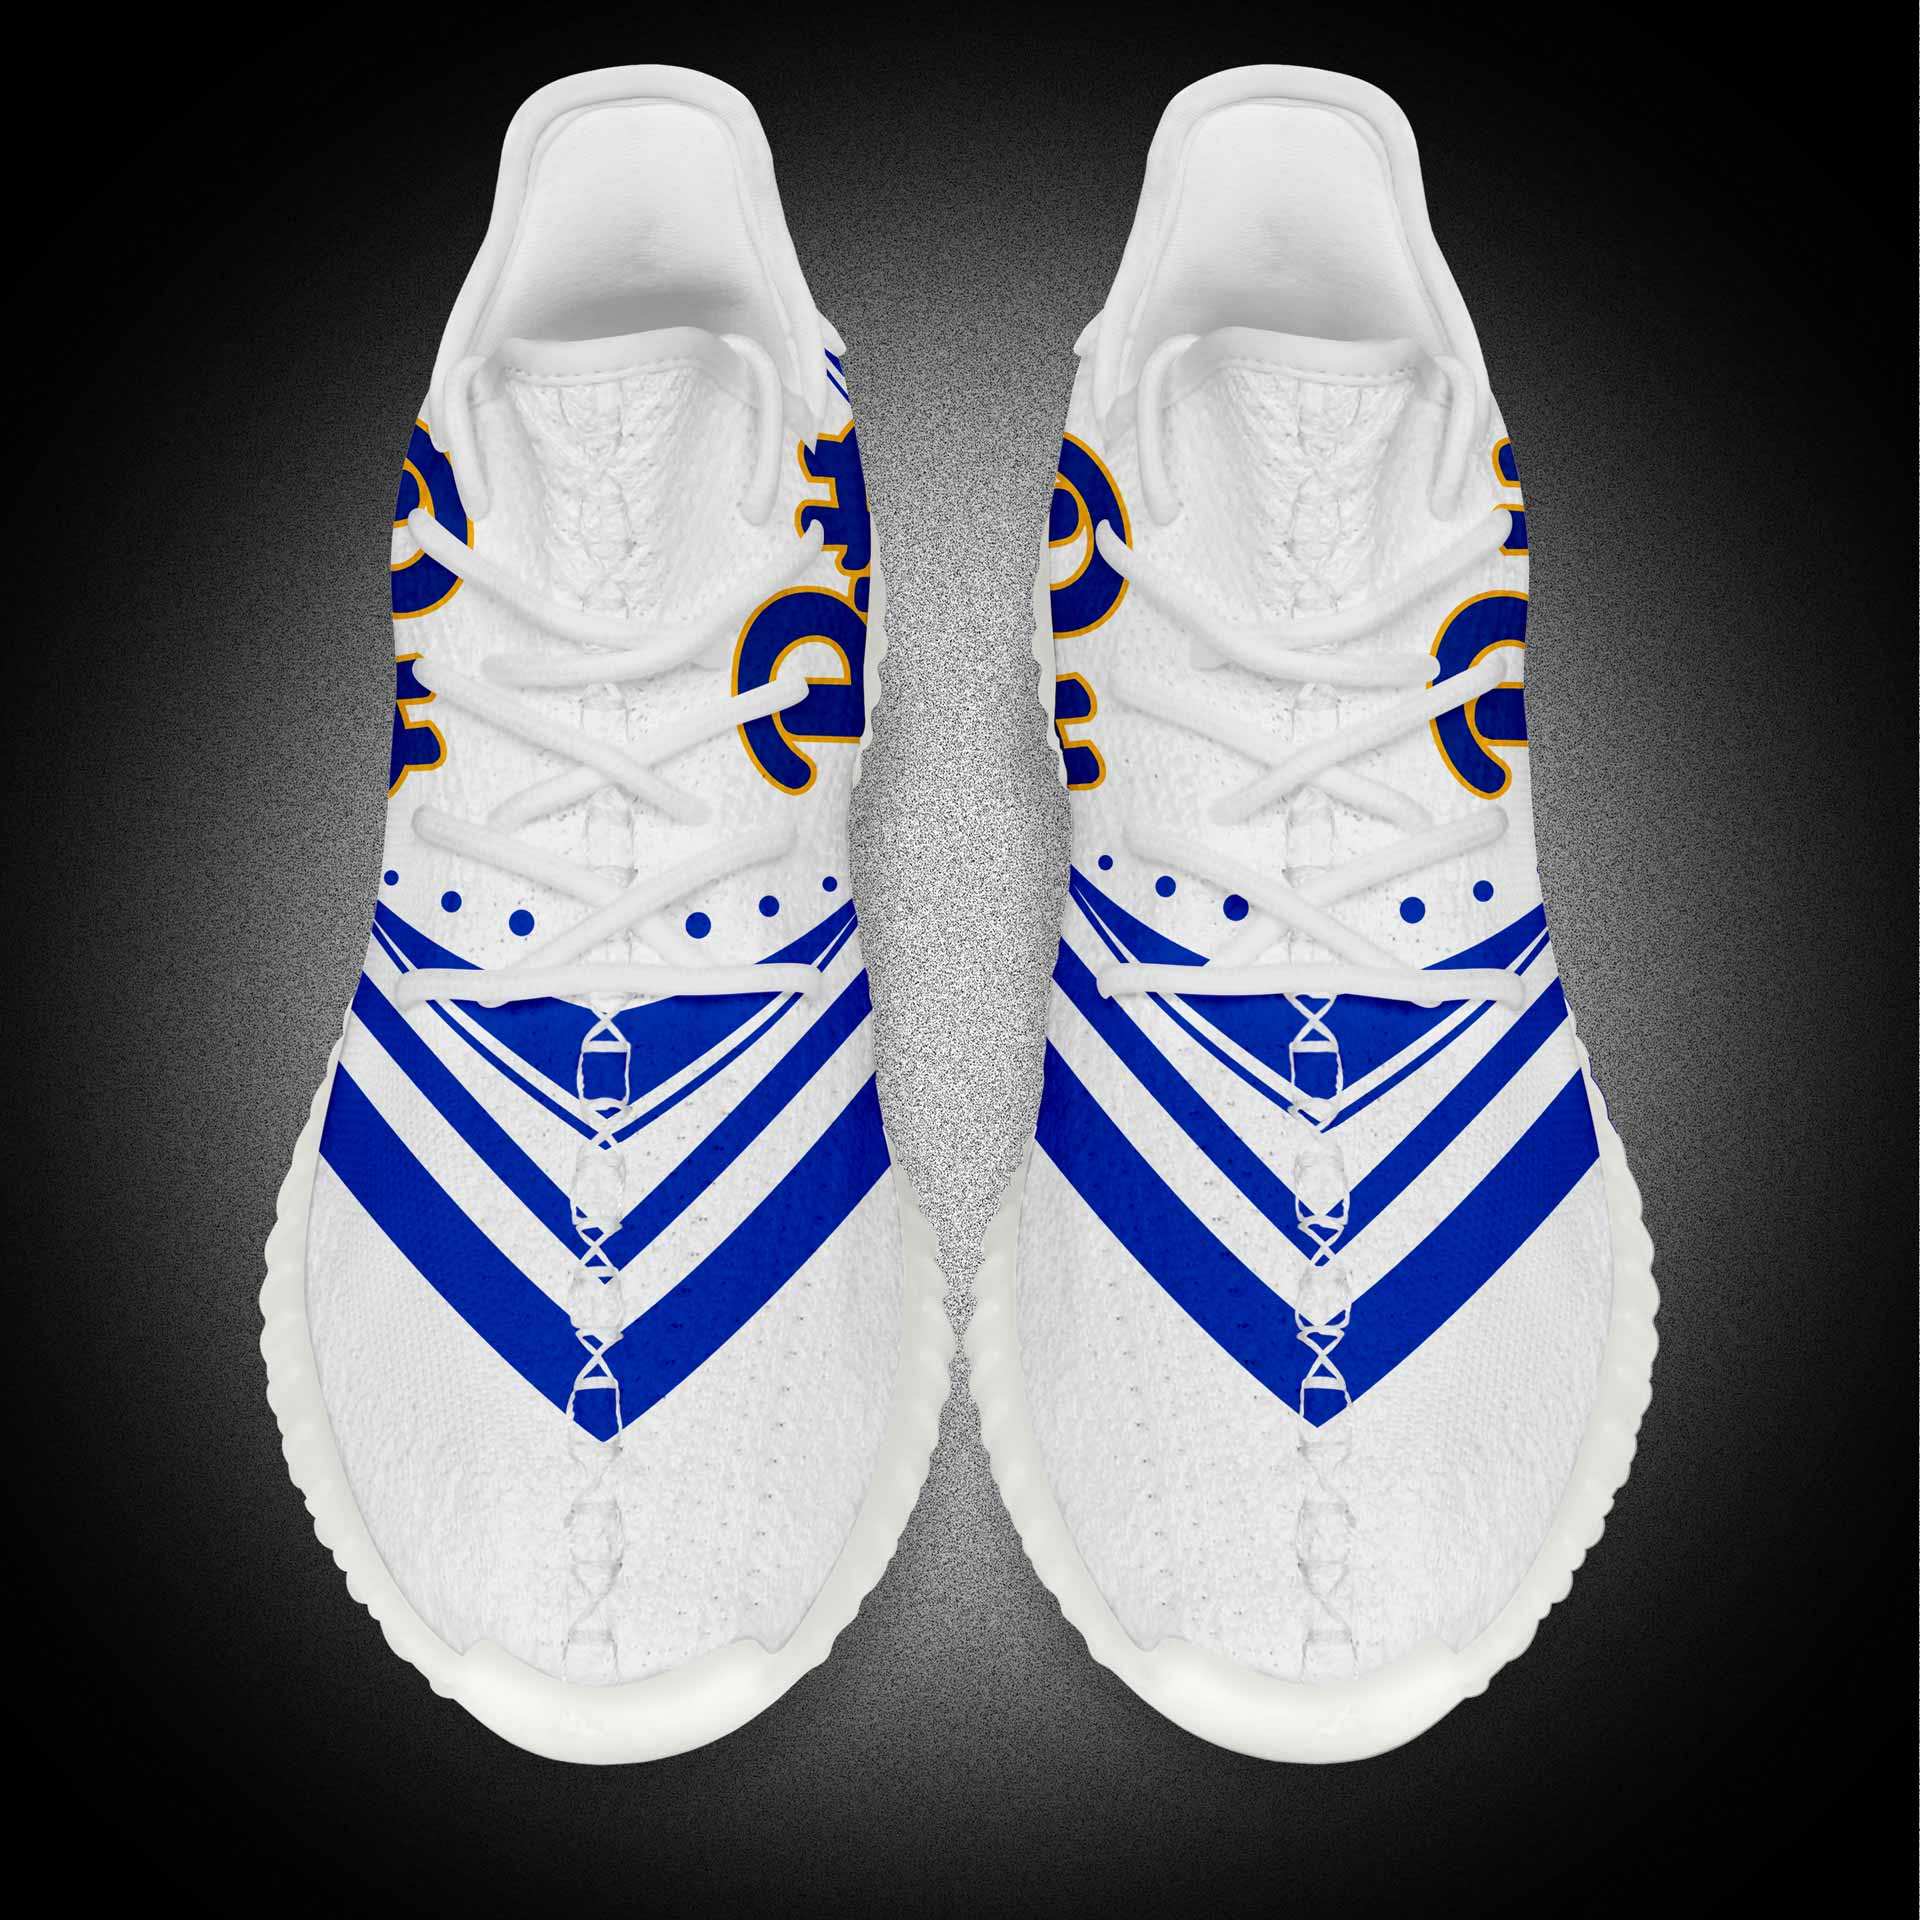 White Color Yeezy Boost Most Popular Men Fashion Sports Shoes